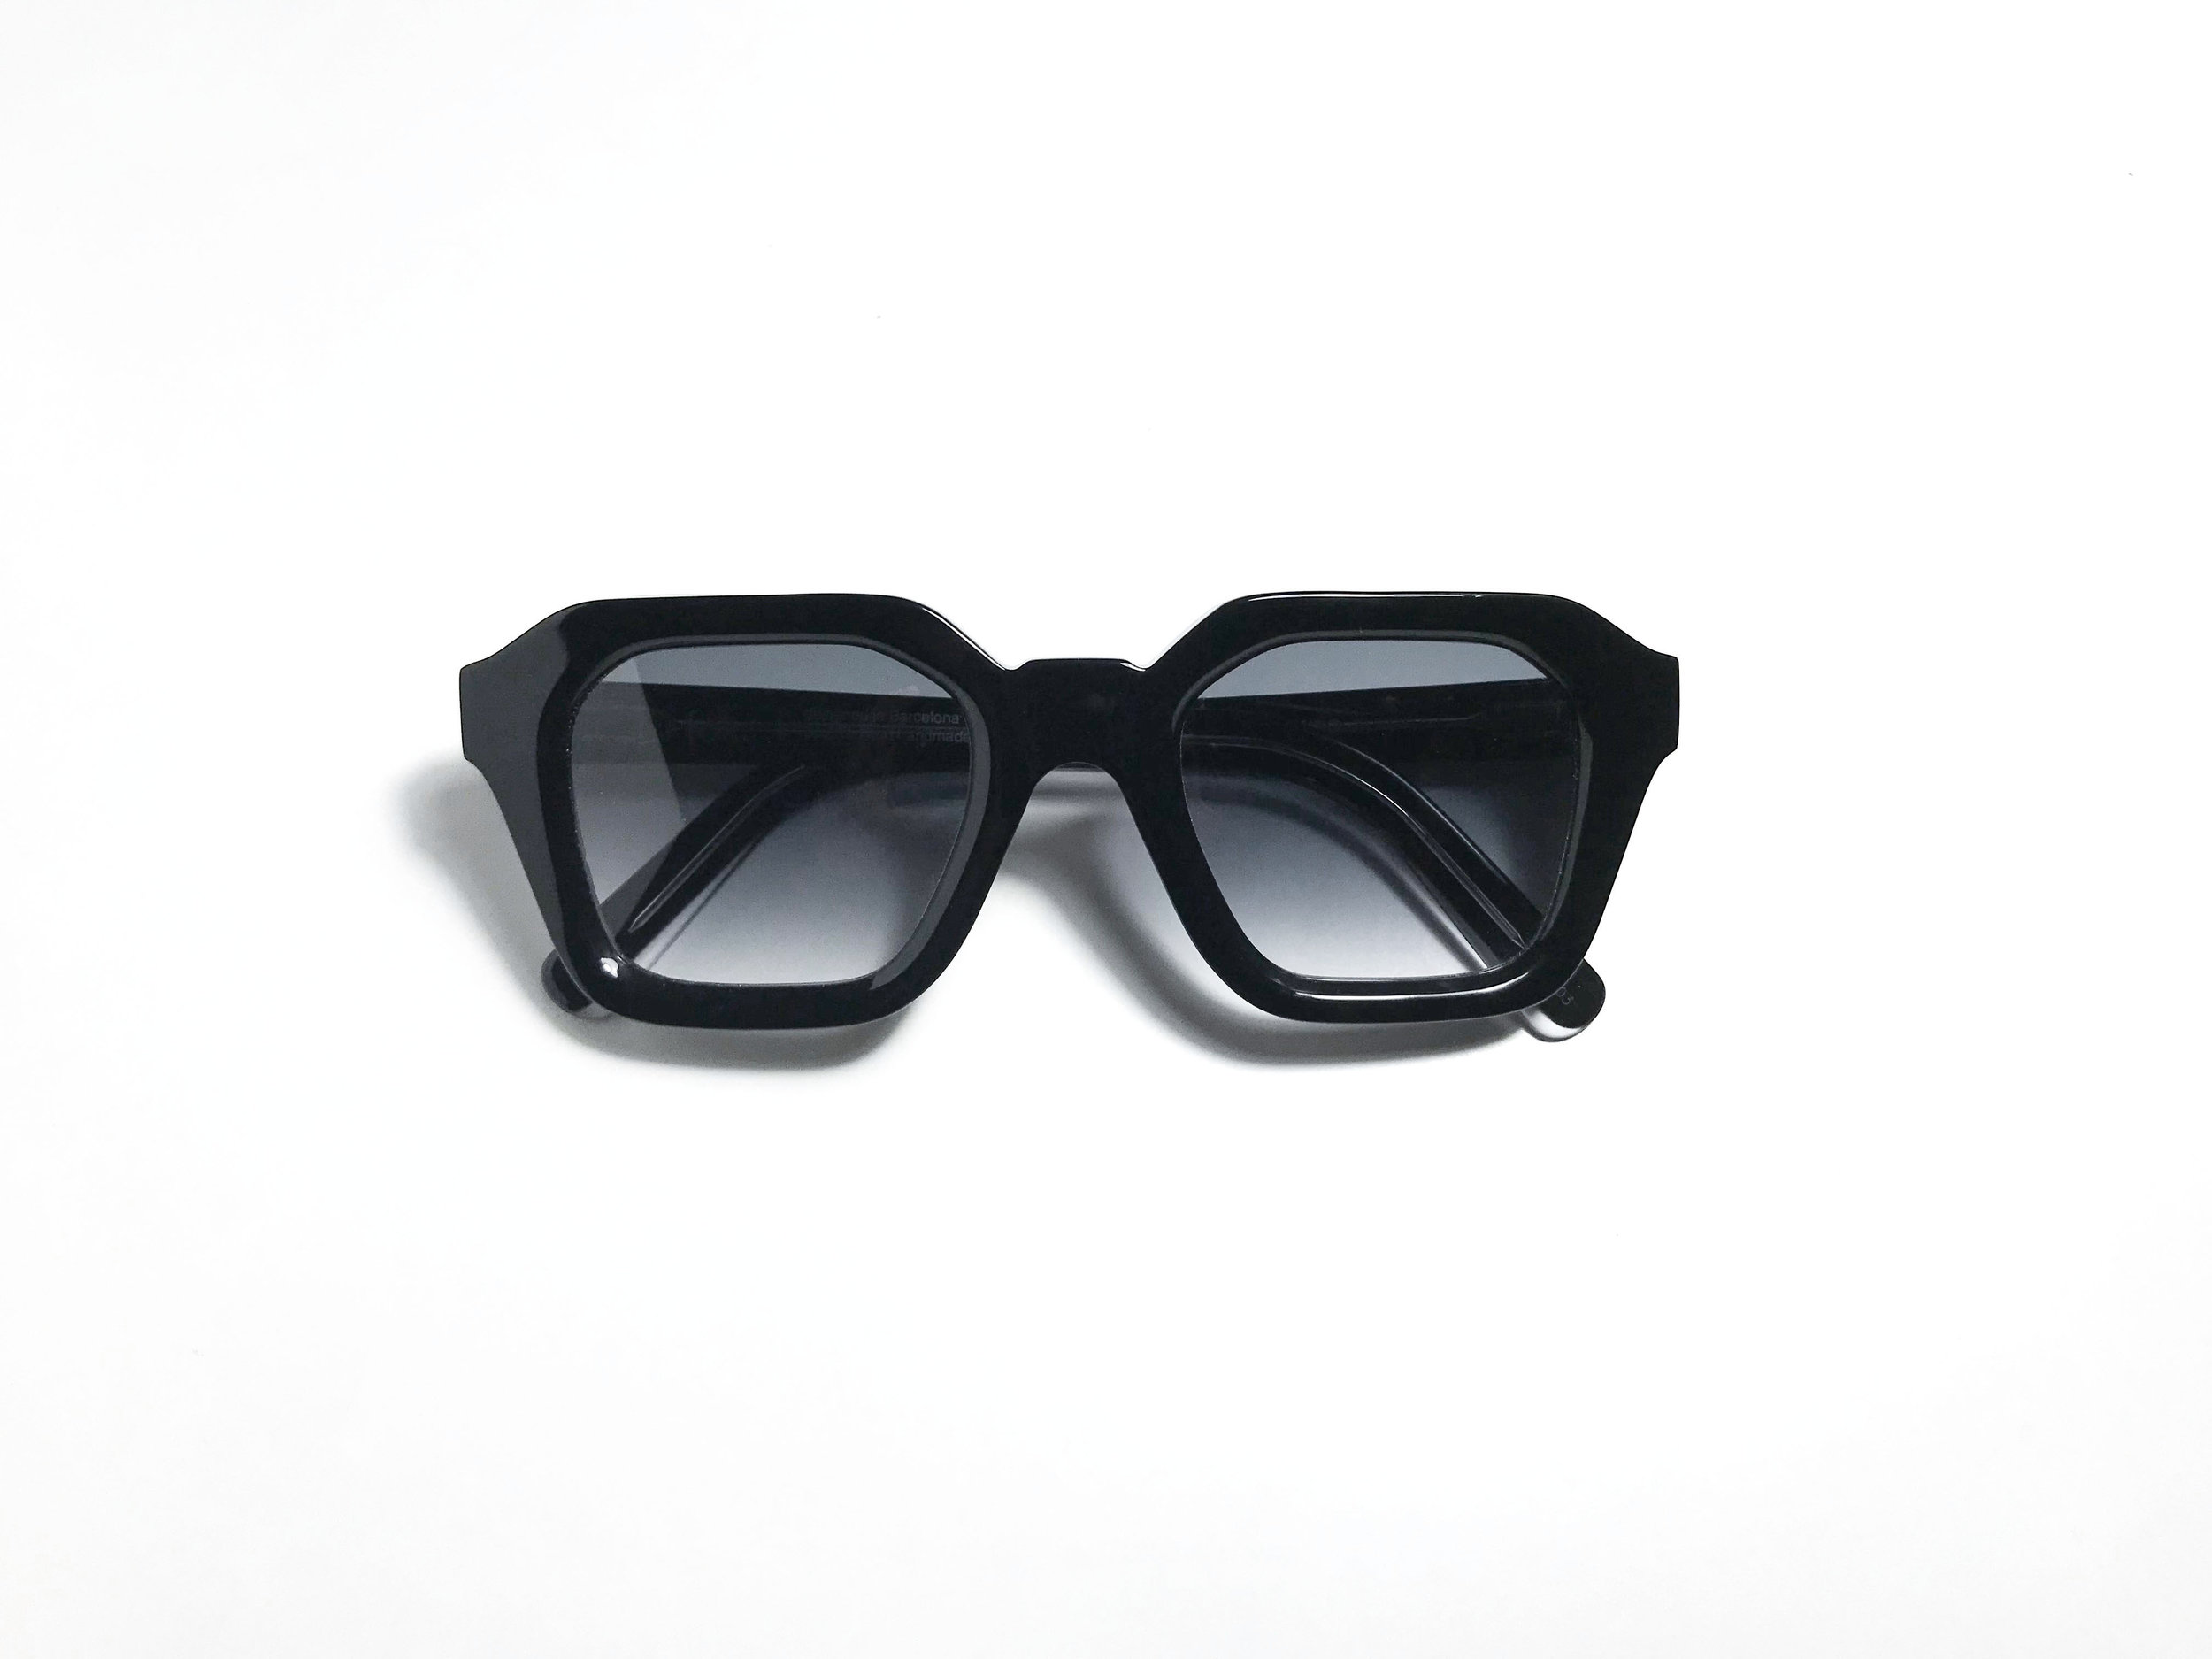 7927e1fe8 Folc eyewear - Sculpted, Contemporary and Sustainable eyewear design ...